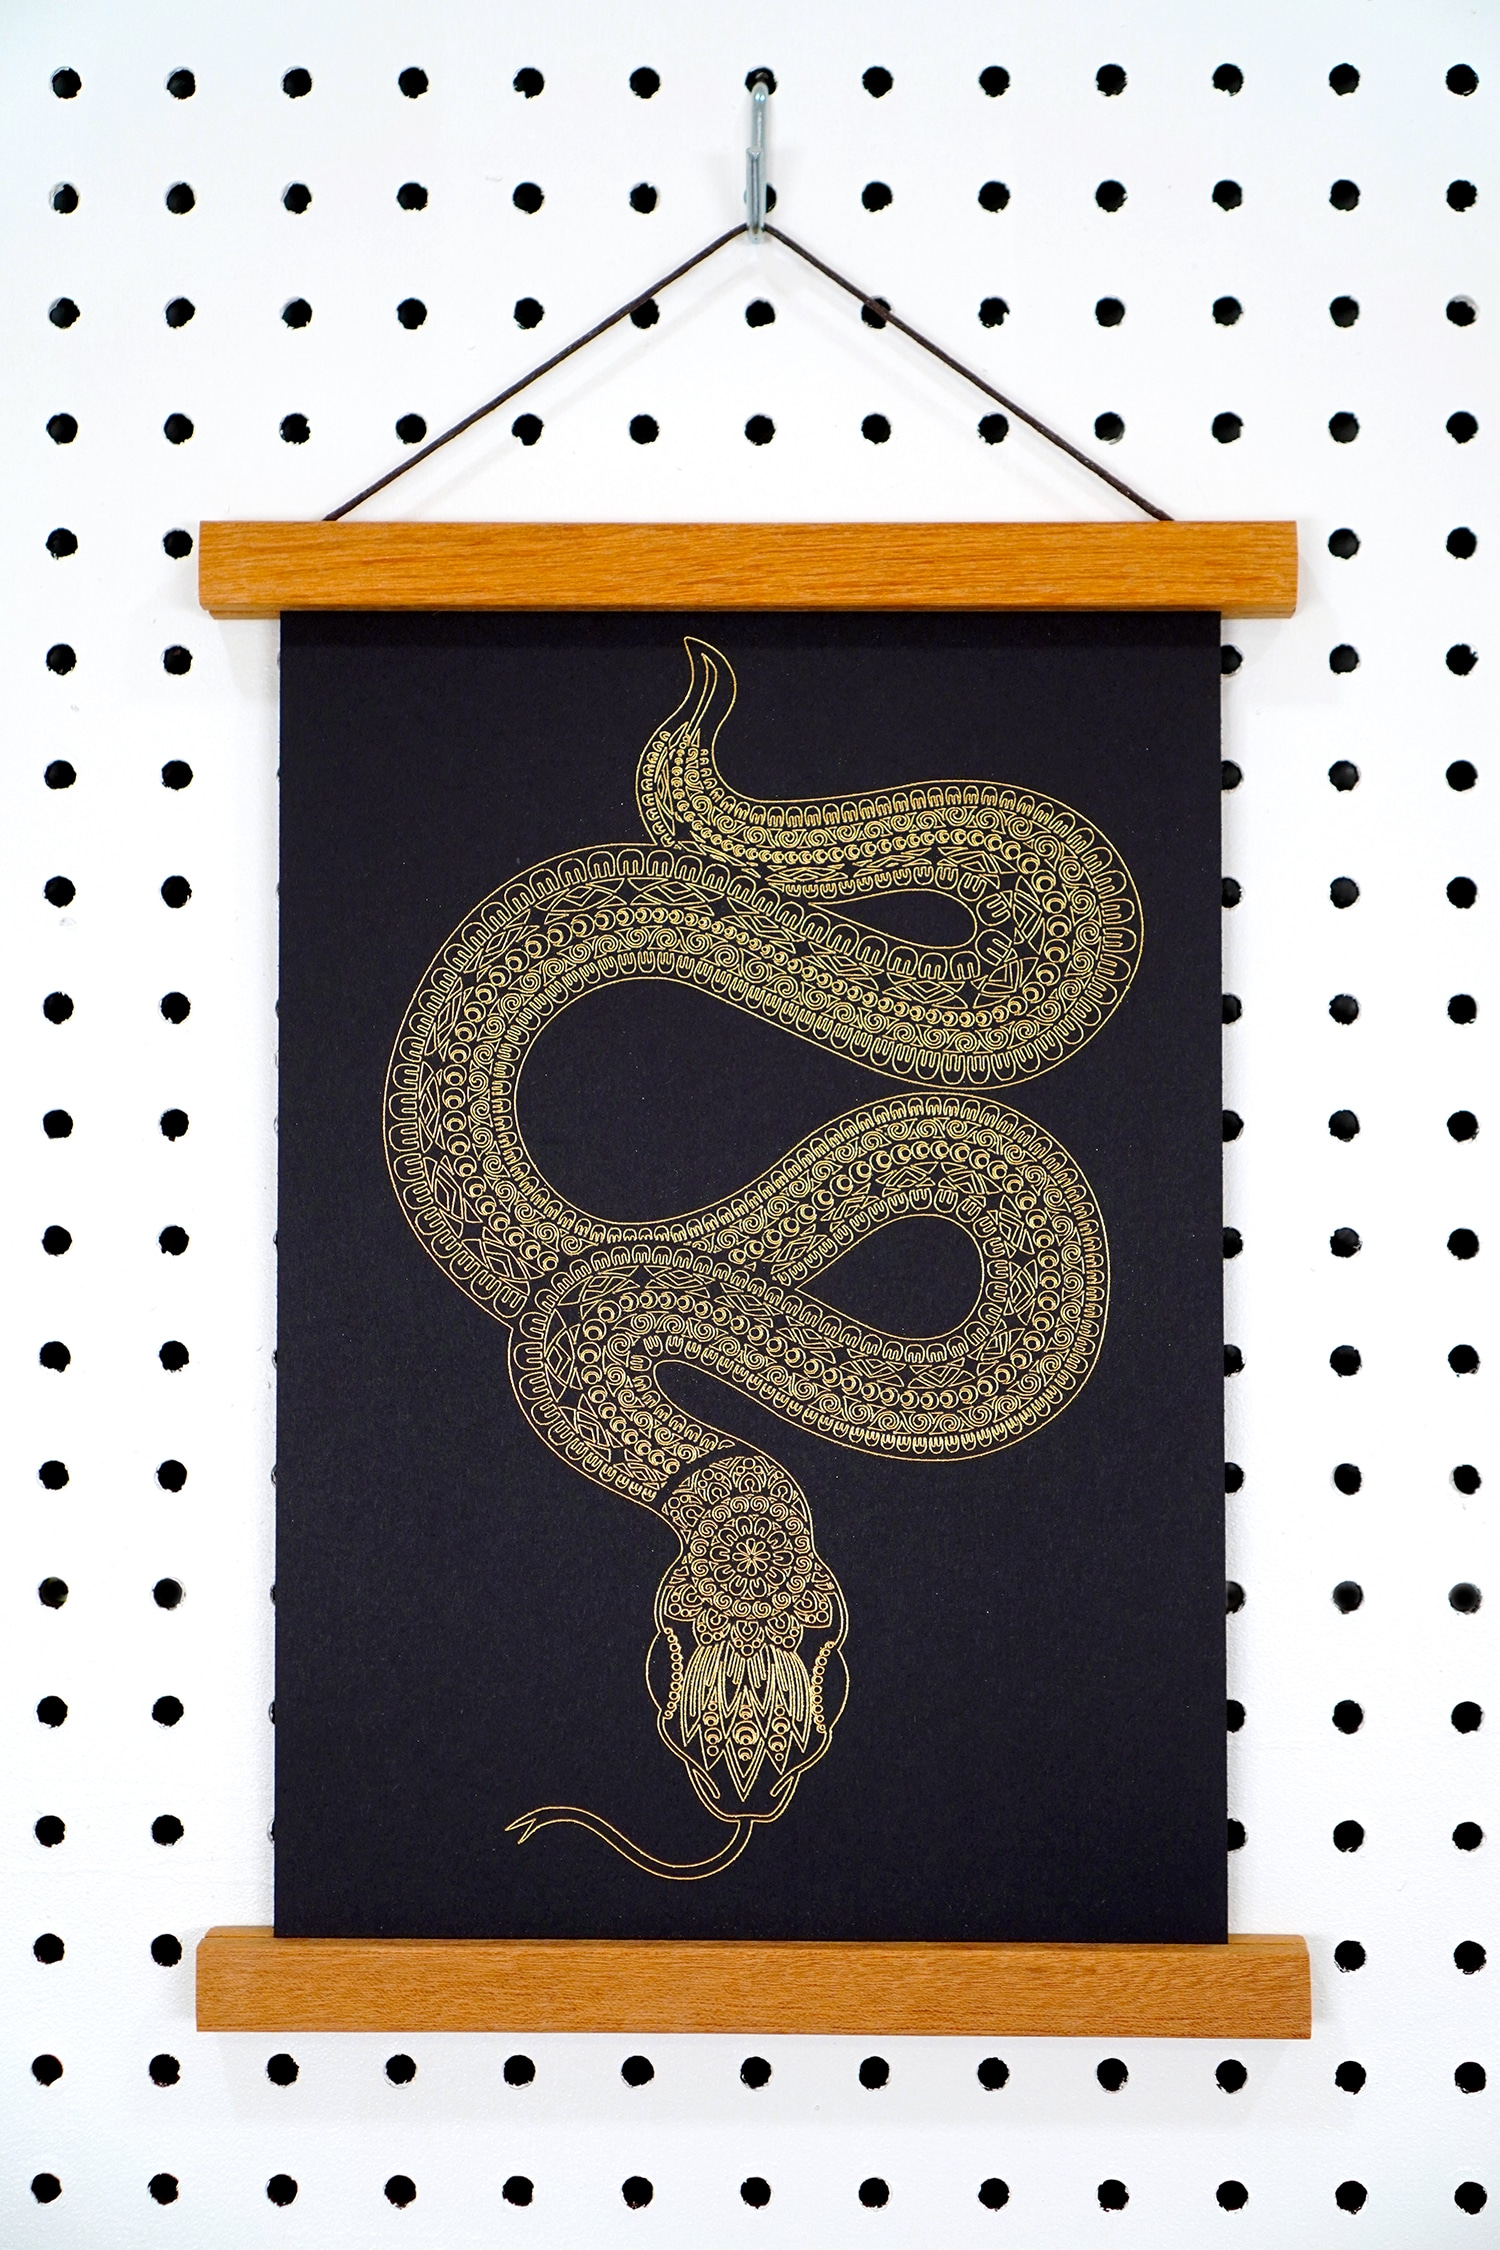 Gold foil art print of a snake with mandala design in wooden art hanger on pegboard